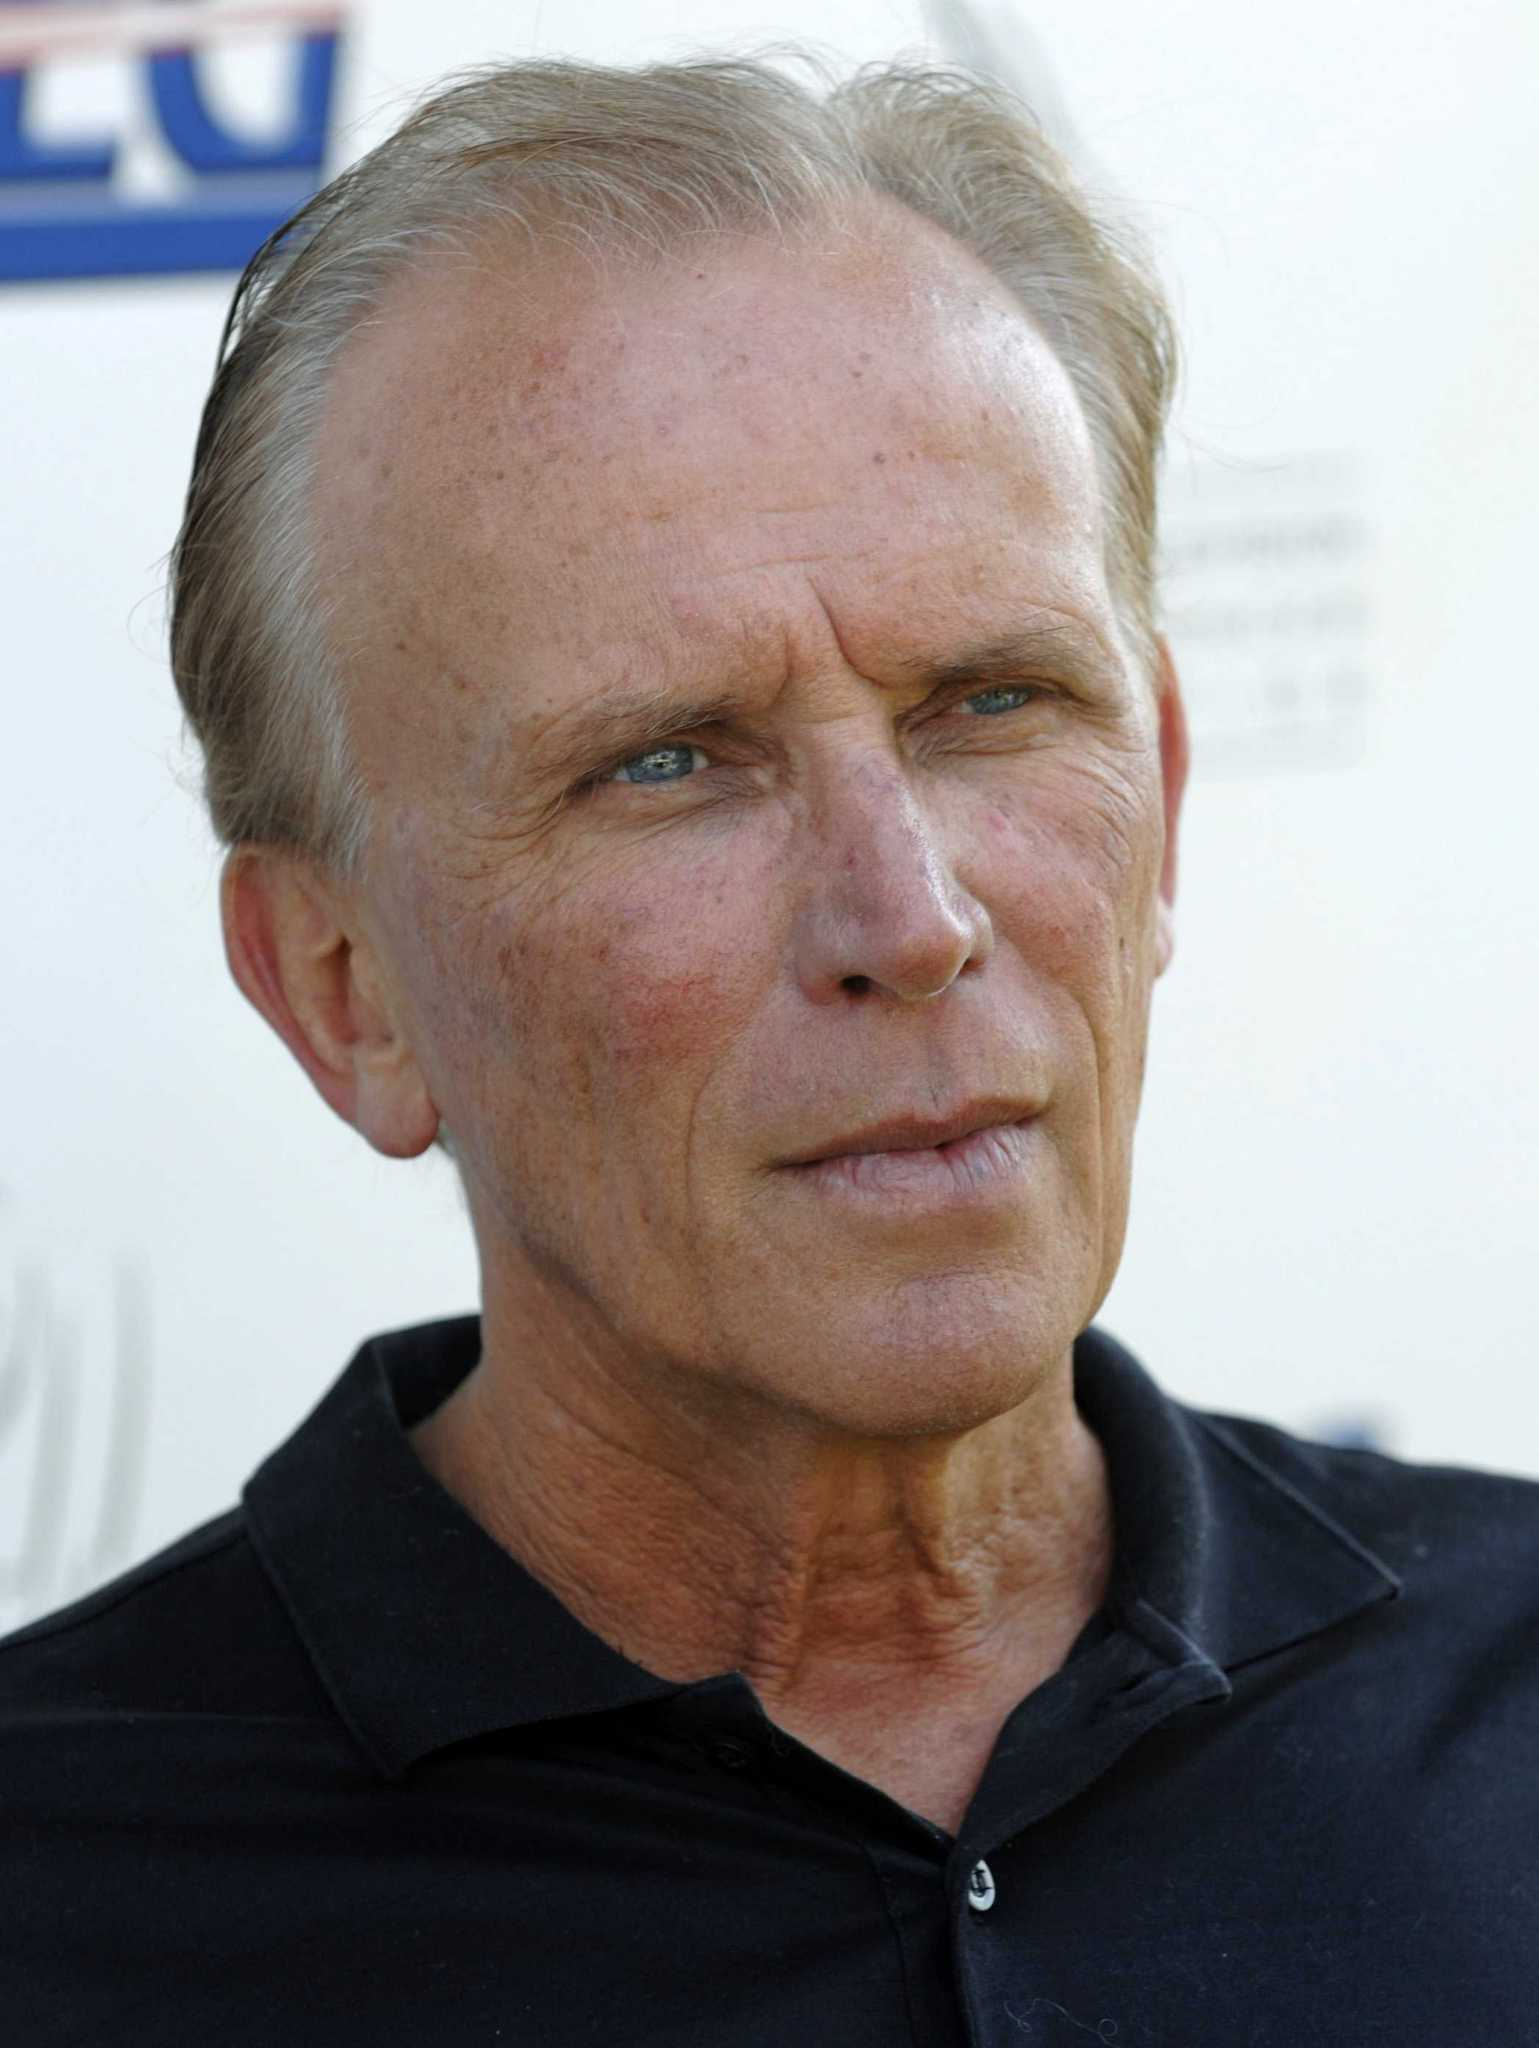 peter weller familypeter weller robocop, peter weller batman, peter weller star trek, peter weller jazz, peter weller family, peter weller imdb, peter weller interview, peter weller height, peter weller screamers, peter weller biography, peter weller egypt, peter weller, peter weller sons of anarchy, peter weller dexter, peter weller net worth, peter weller wiki, peter weller syracuse university, peter weller robocop 3, peter weller professor, peter weller history channel